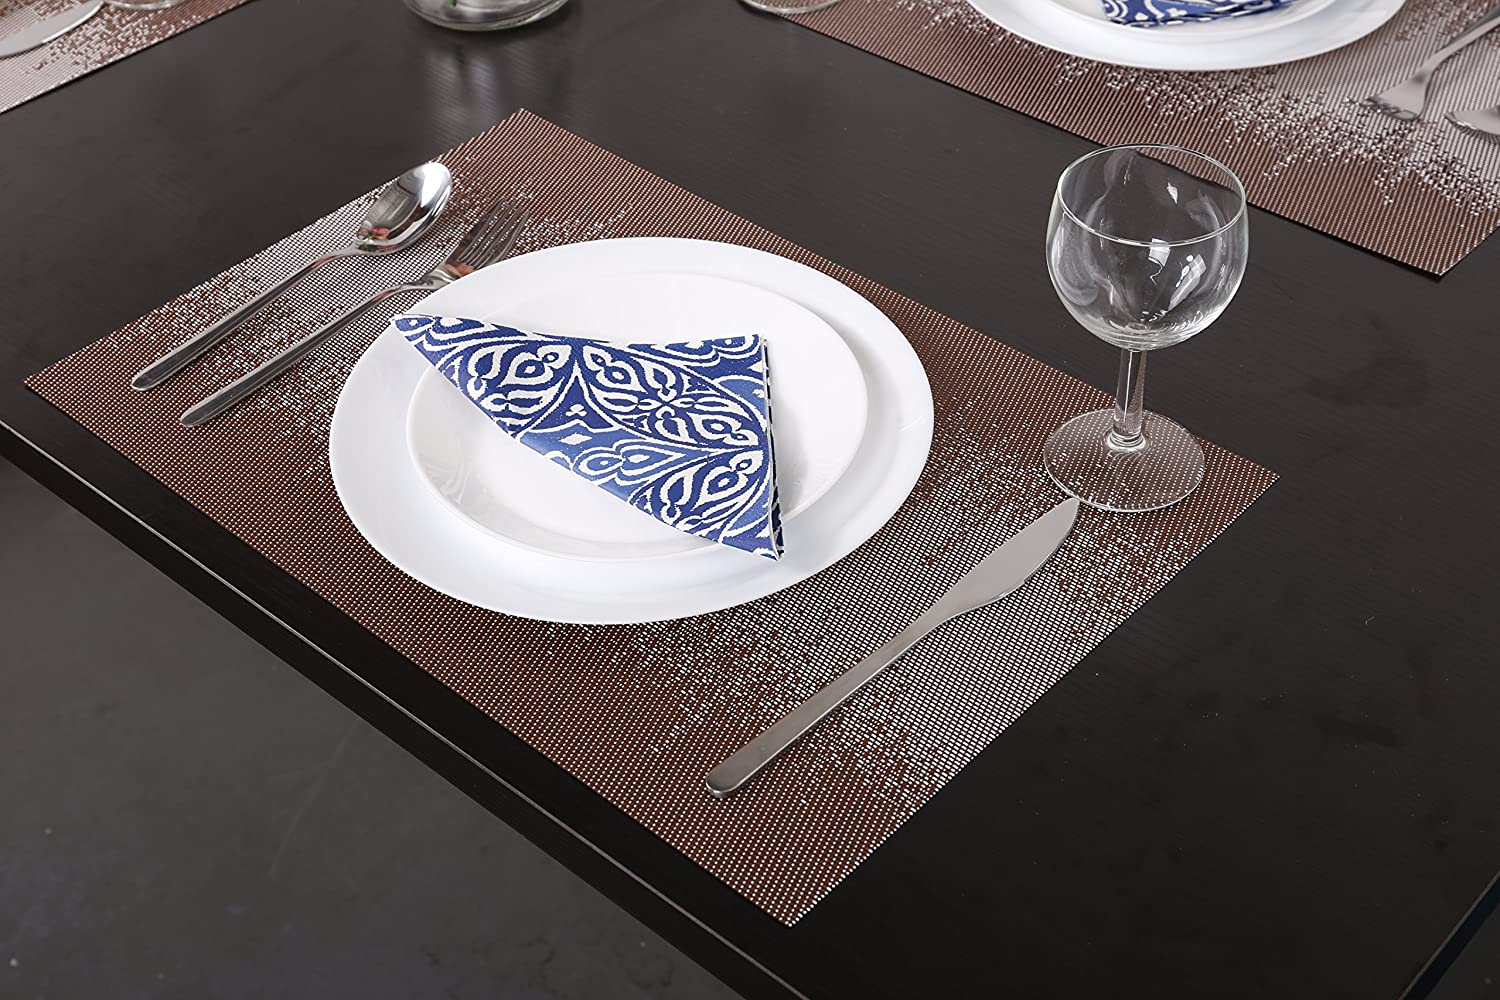 SICOHOME Soft Placemat,Blue,Set of 6